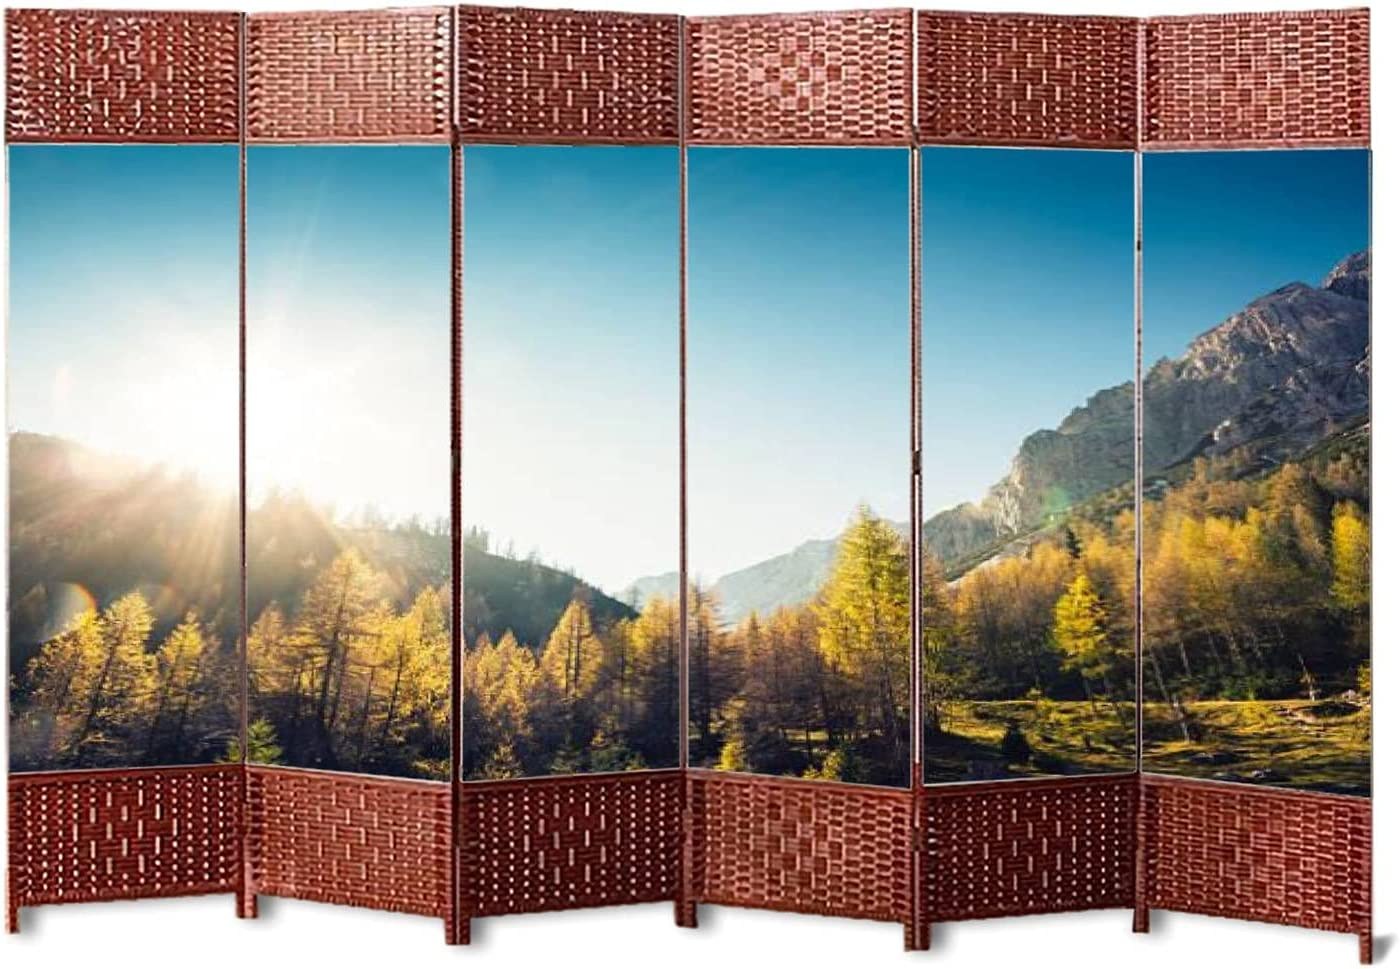 6 Panels Weave Folding Room OFFer Divider Larch Fo Canvas Golden Trees Limited price sale